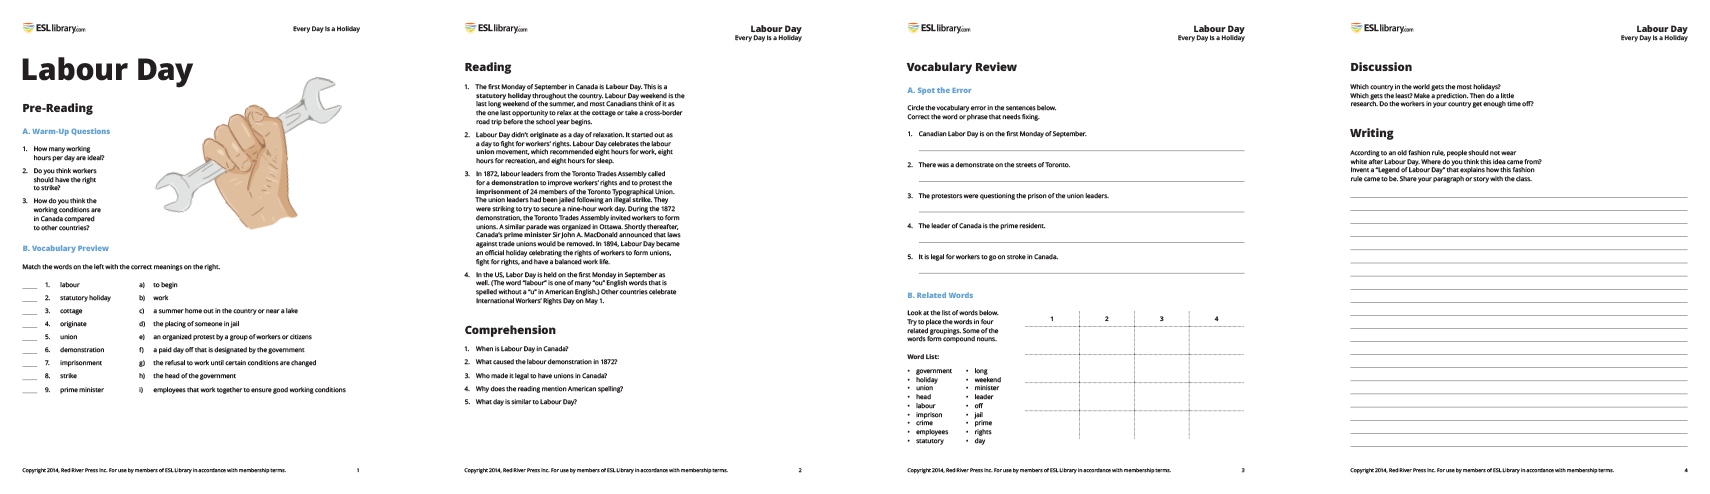 English teaching worksheets  Creative writing Miss Donnelly s Daily Apple Teaching Creative Writing  Ideas  exercises  resources and lesson plans for  teachers of creative writing classes